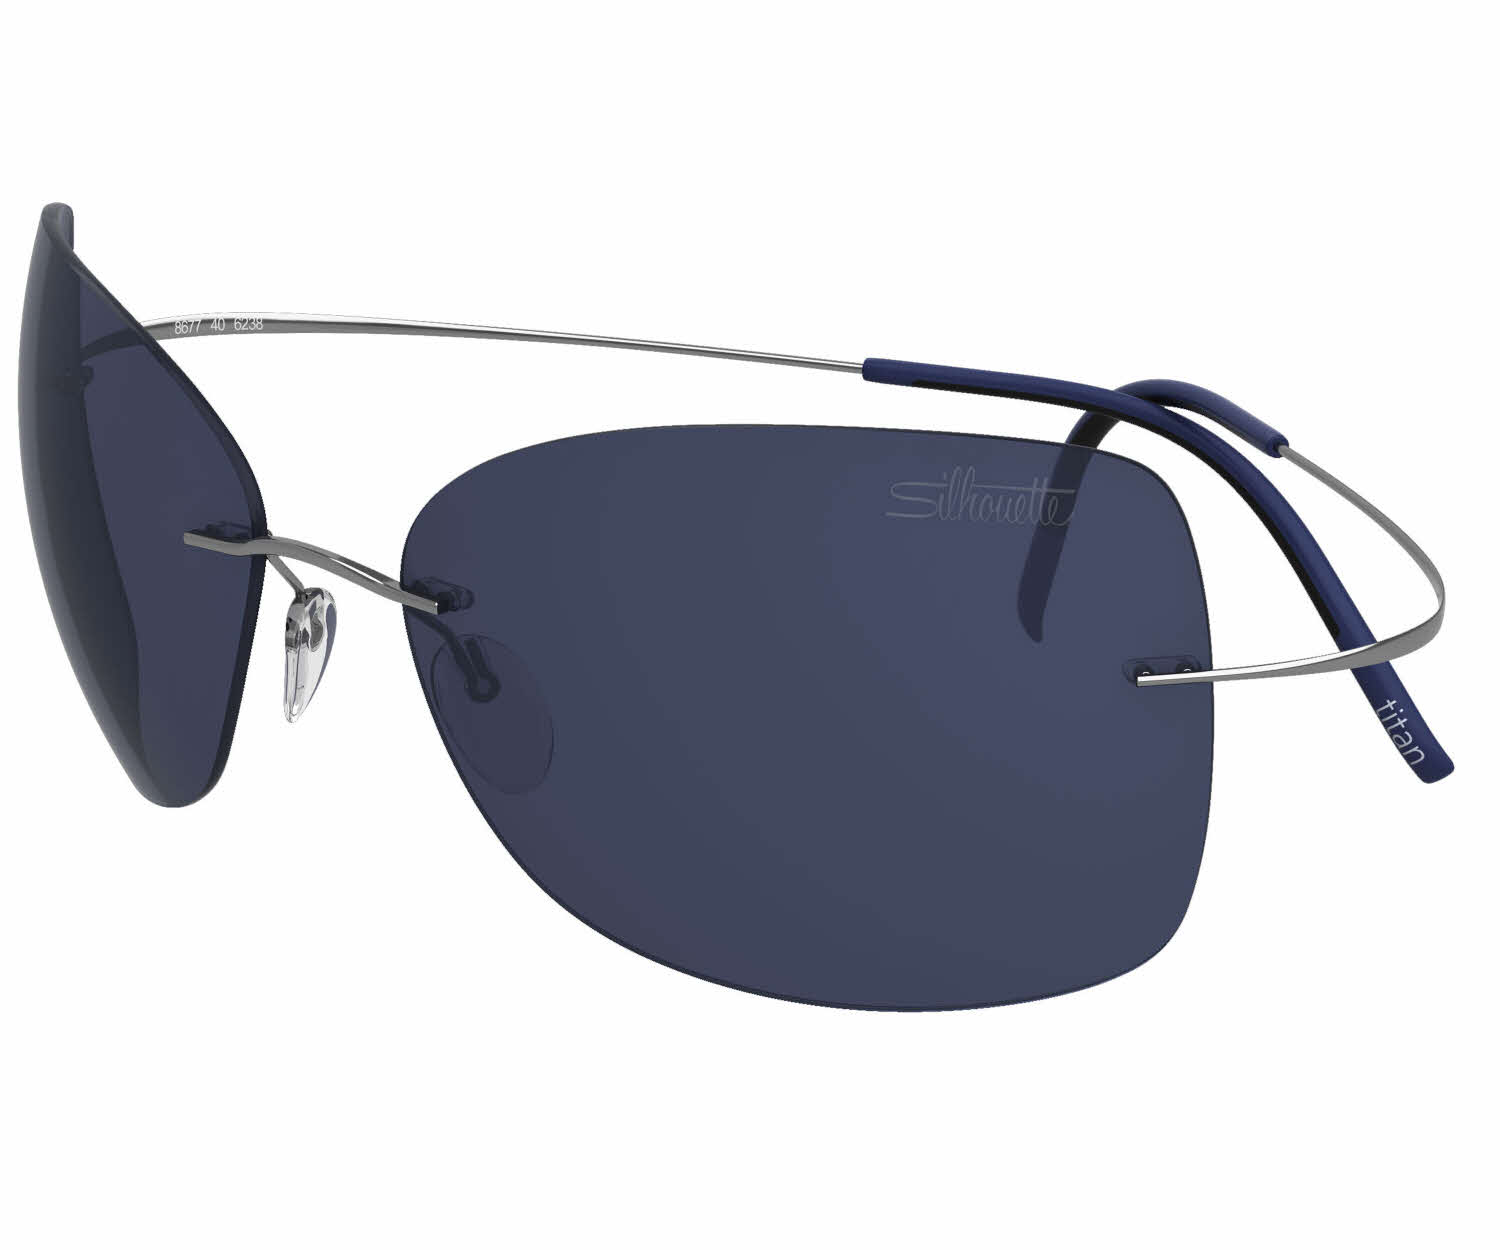 Silhouette TMA Ultra Thin 8147 Sunglasses